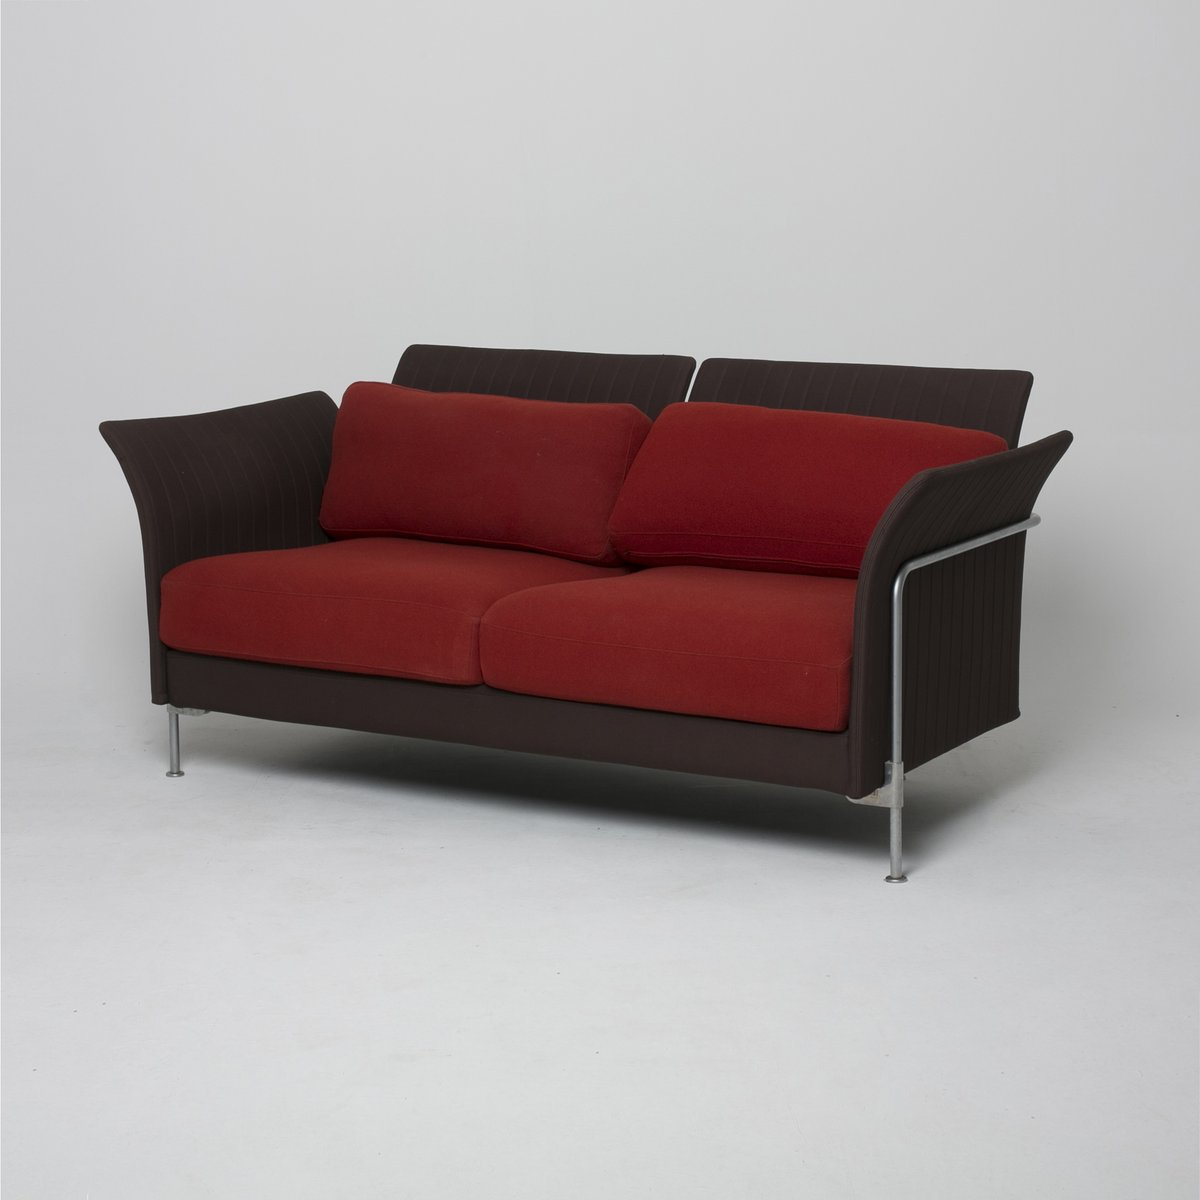 Canap sofa by ronan erwan bouroullec for vitra for sale for Canape for sale